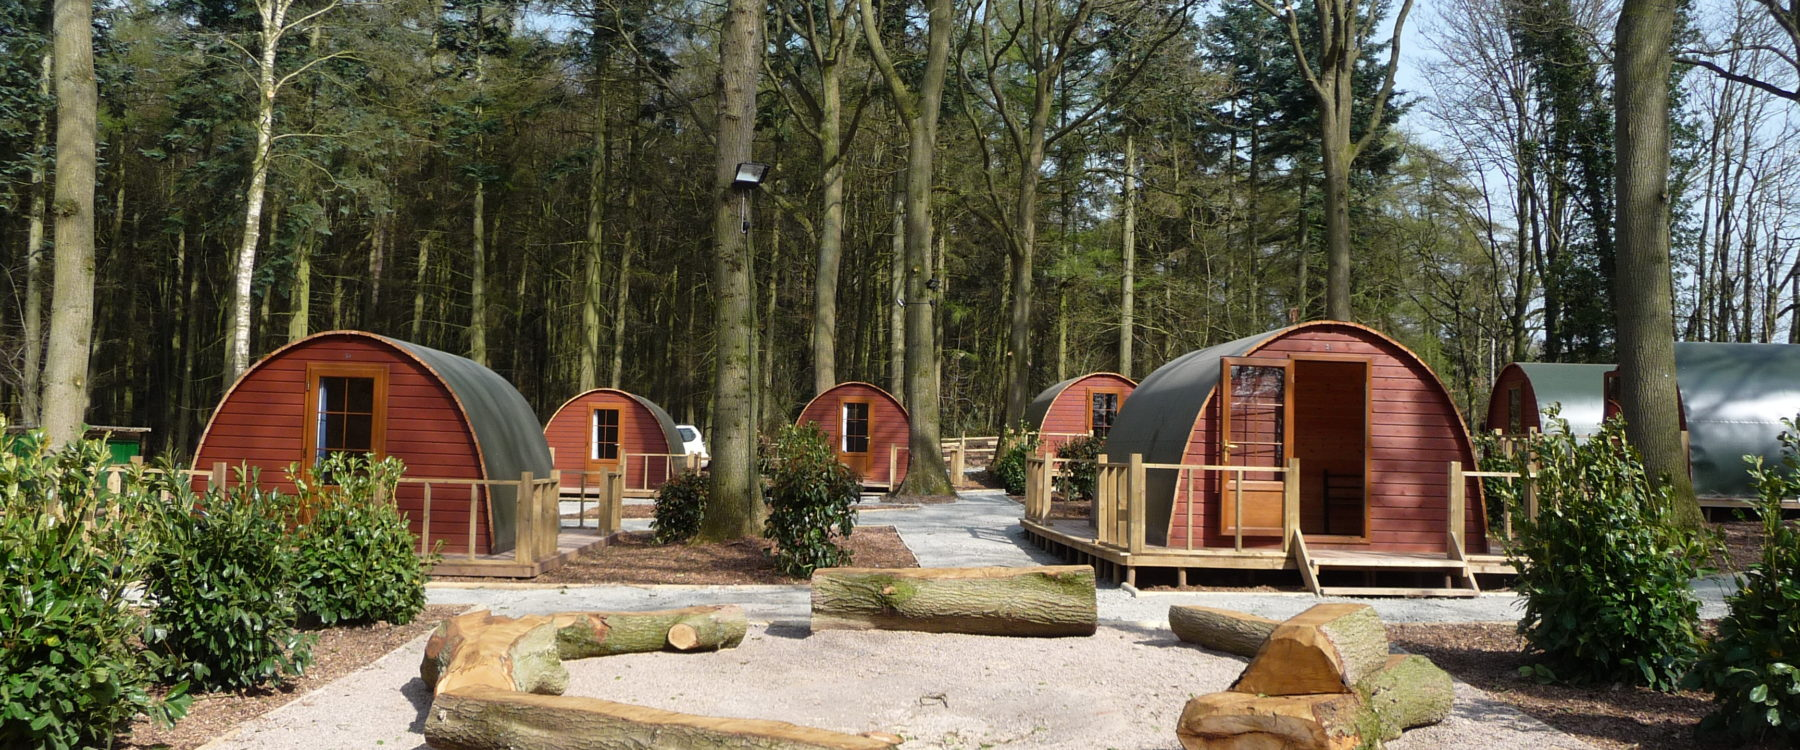 Glamping Village for exclusive hire